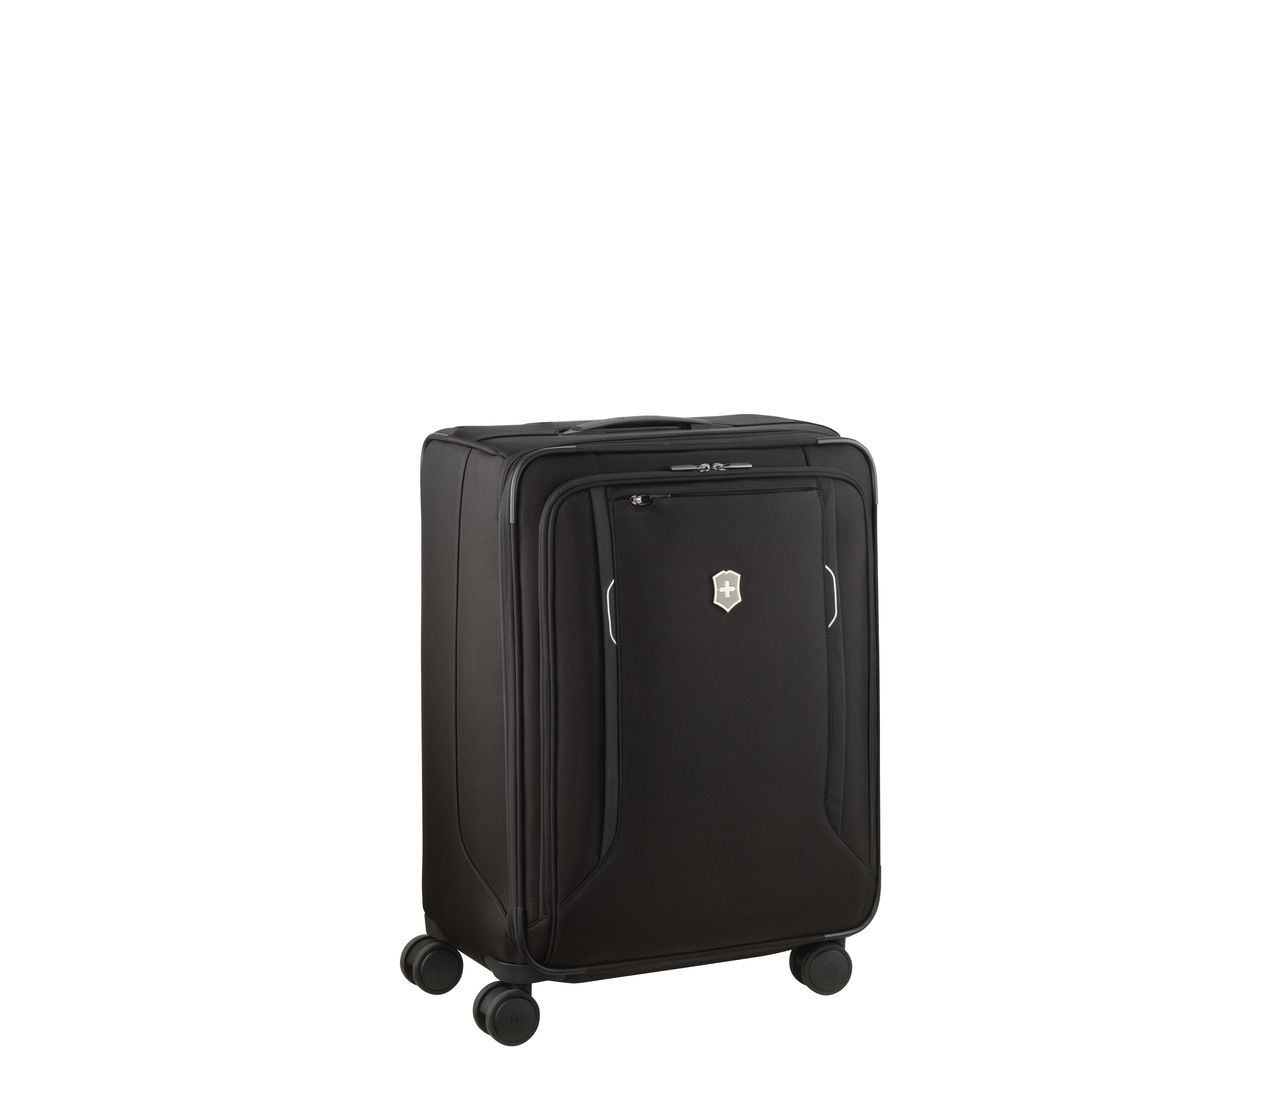 d3bb97c232c8 Victorinox Werks Traveler 6.0 Softside Medium Case in black - 605408